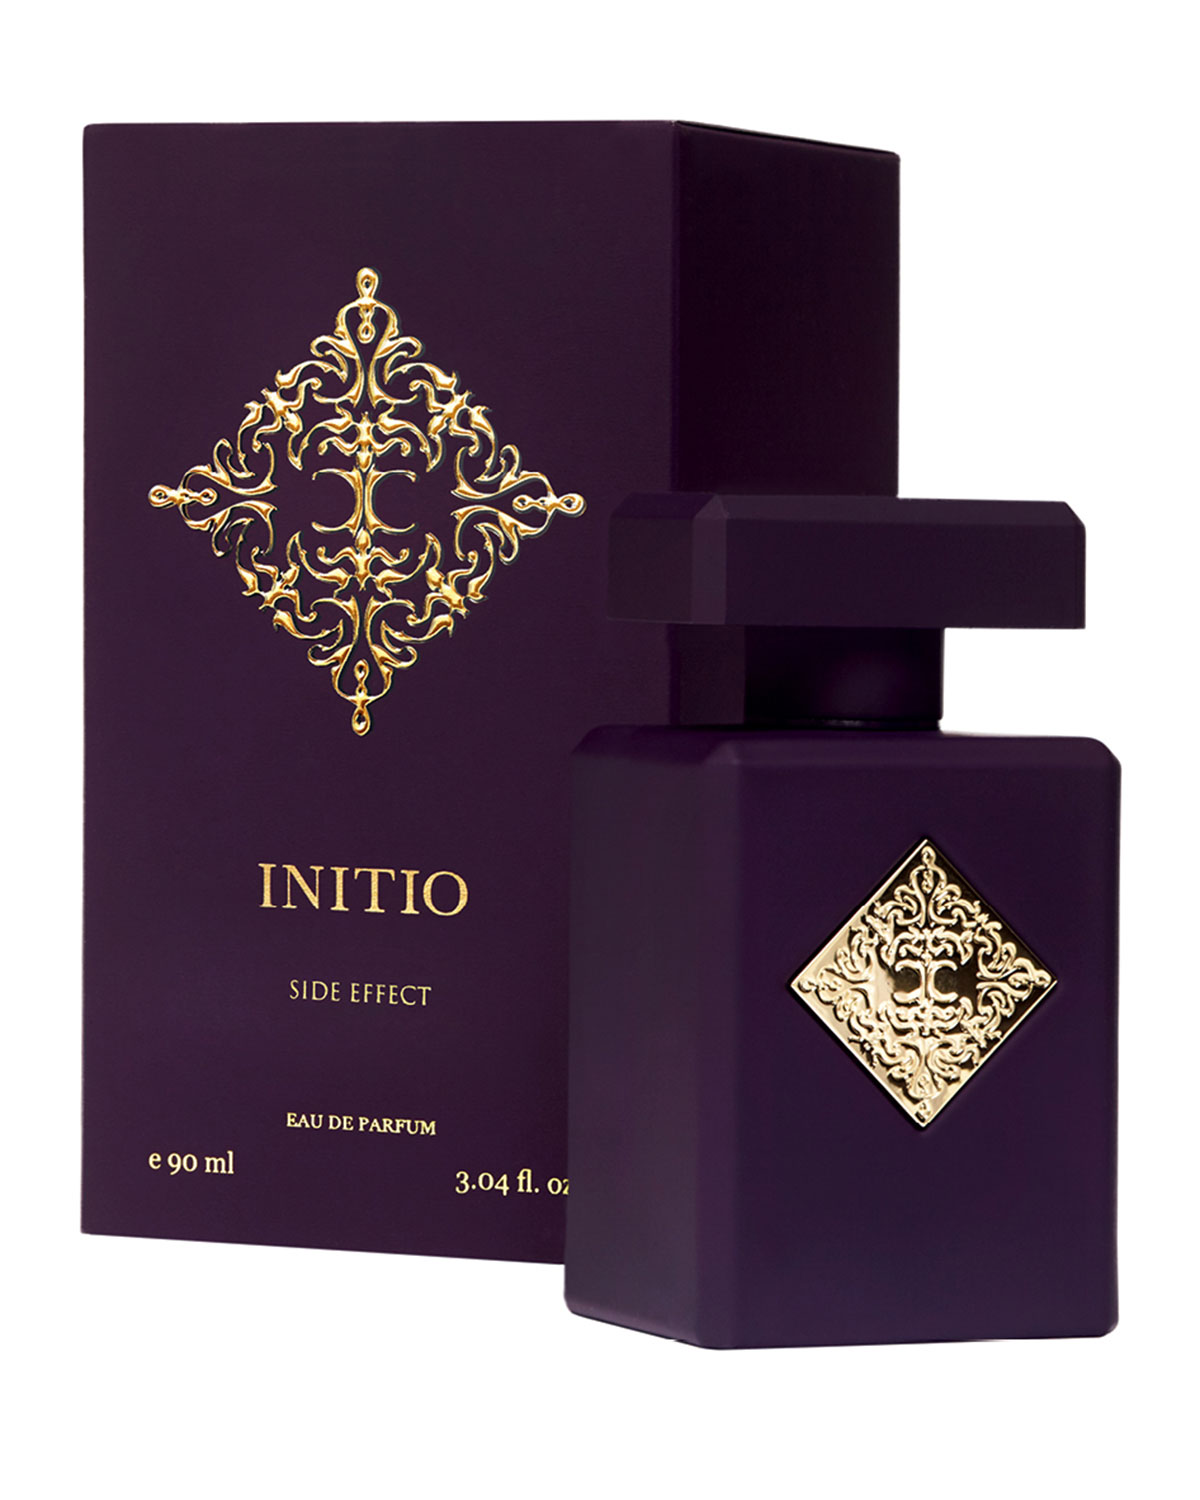 Side Effect Eau De Parfum, 3.0 Oz./ 90 M L by Initio Parfums Prives